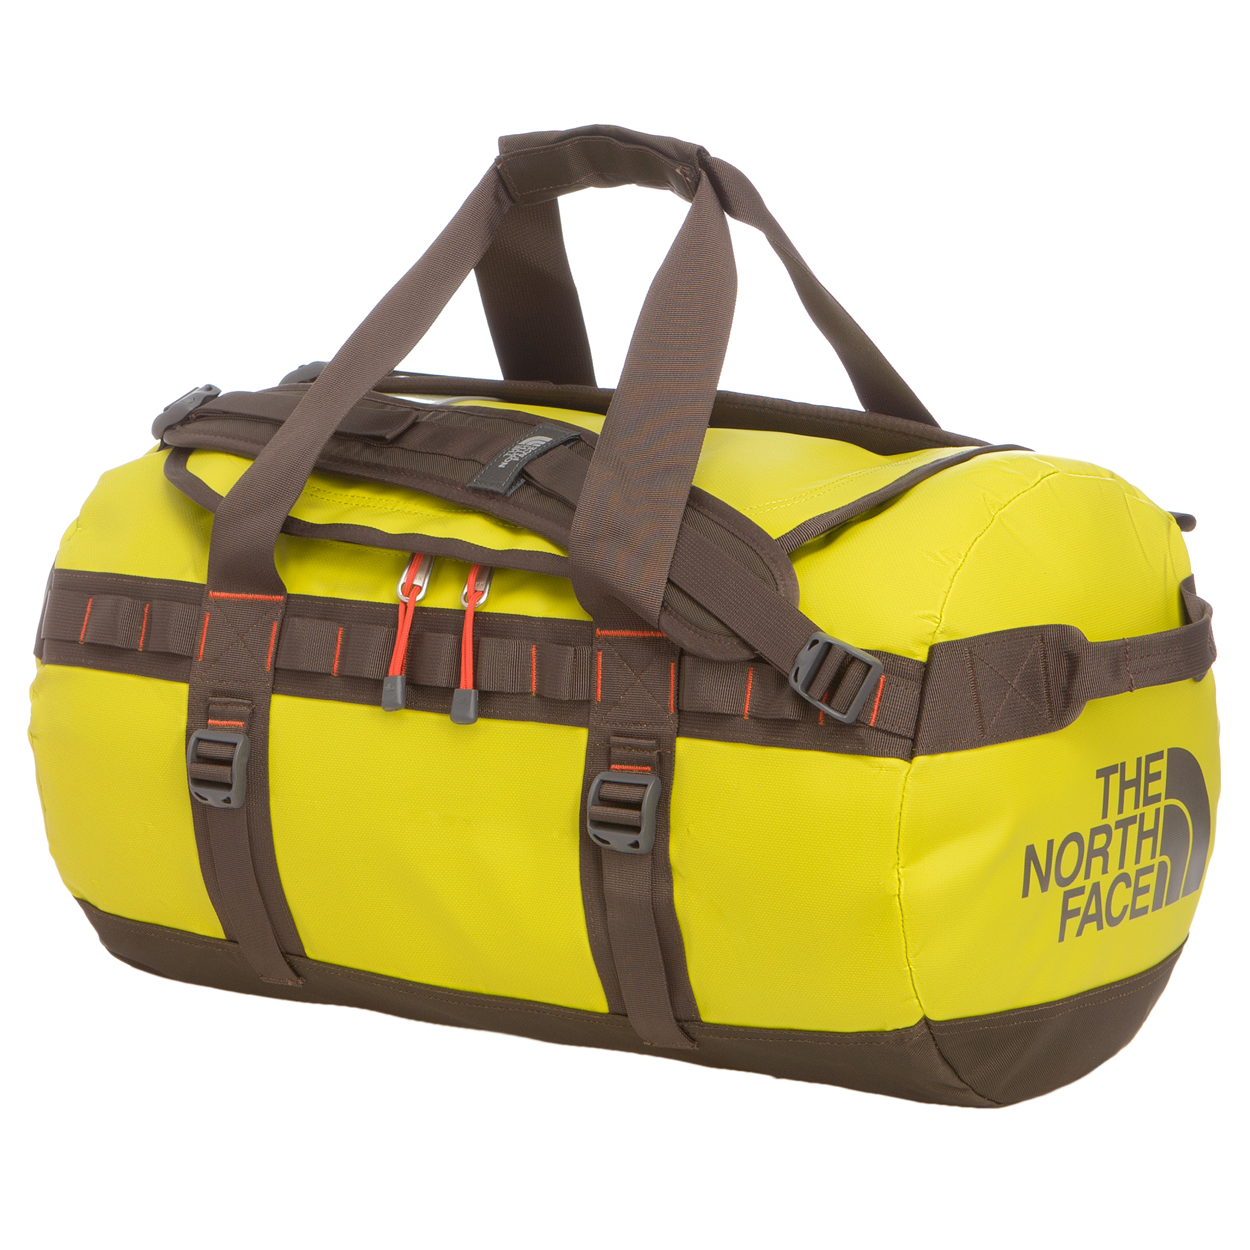 625ef39ef The North Face Base Camp 42 Litre Duffel Holdall Airport Luggage Bag ...